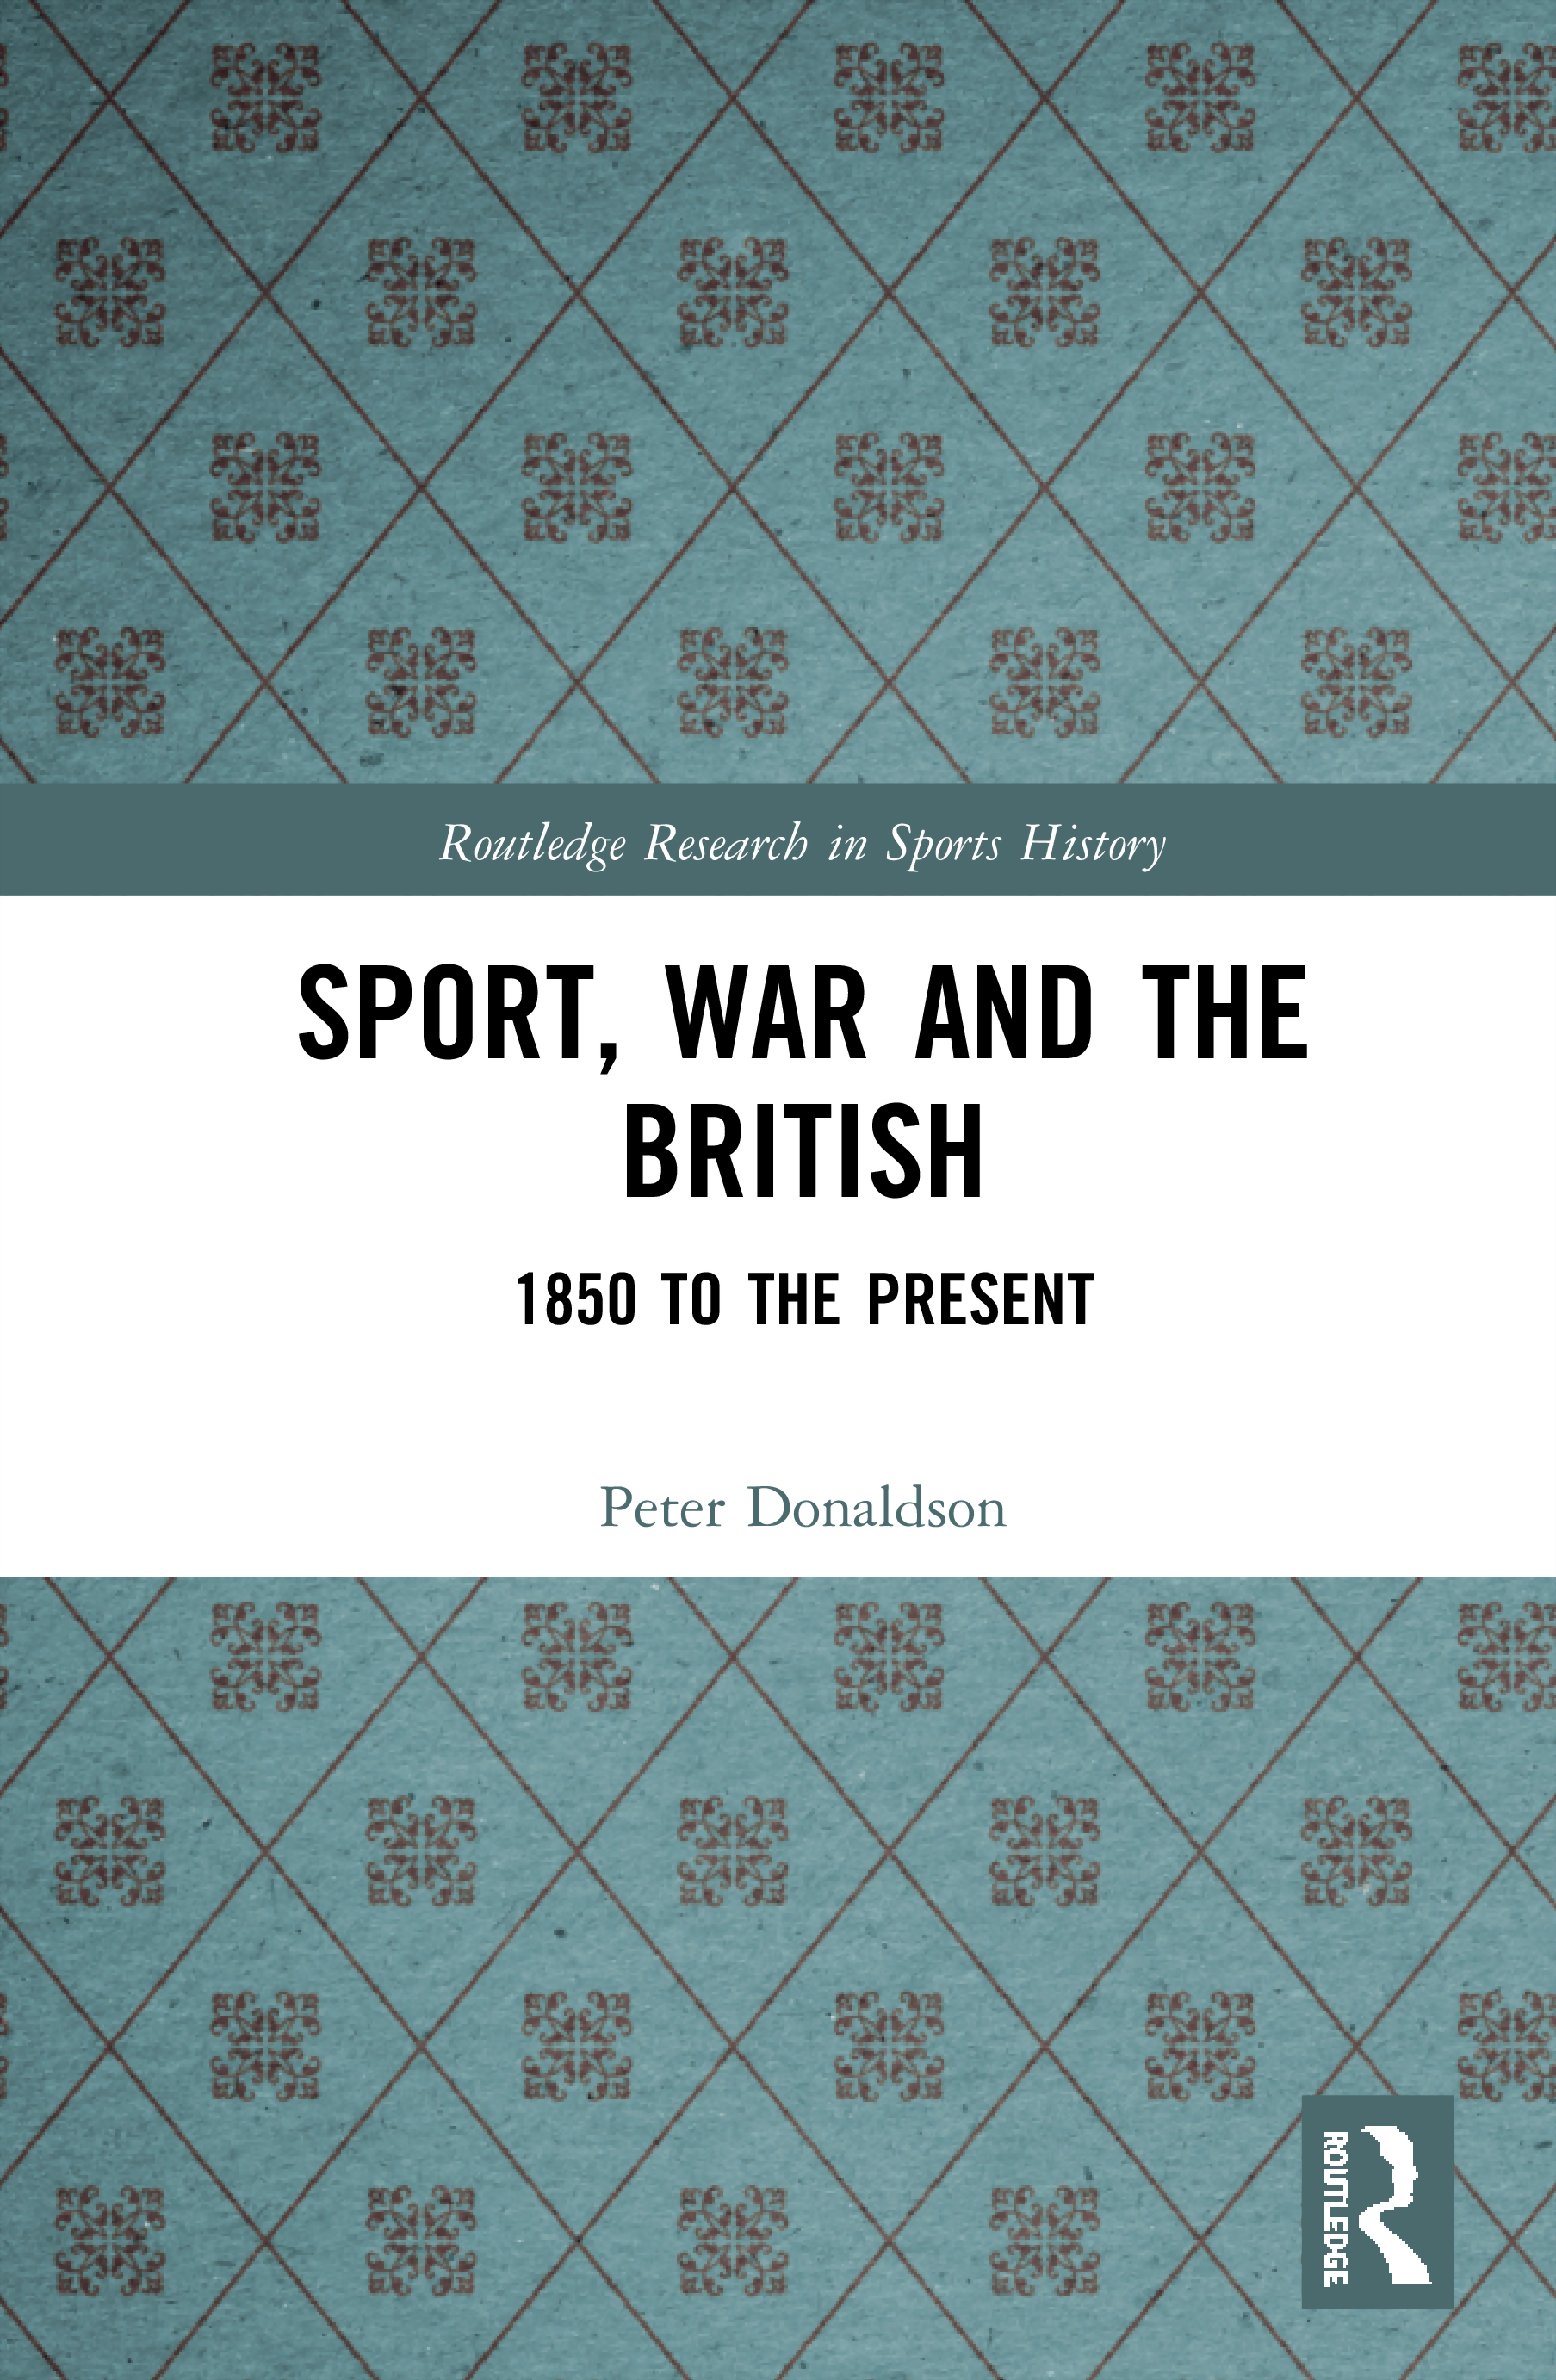 Sport, War and the British: 1850 to the Present book cover